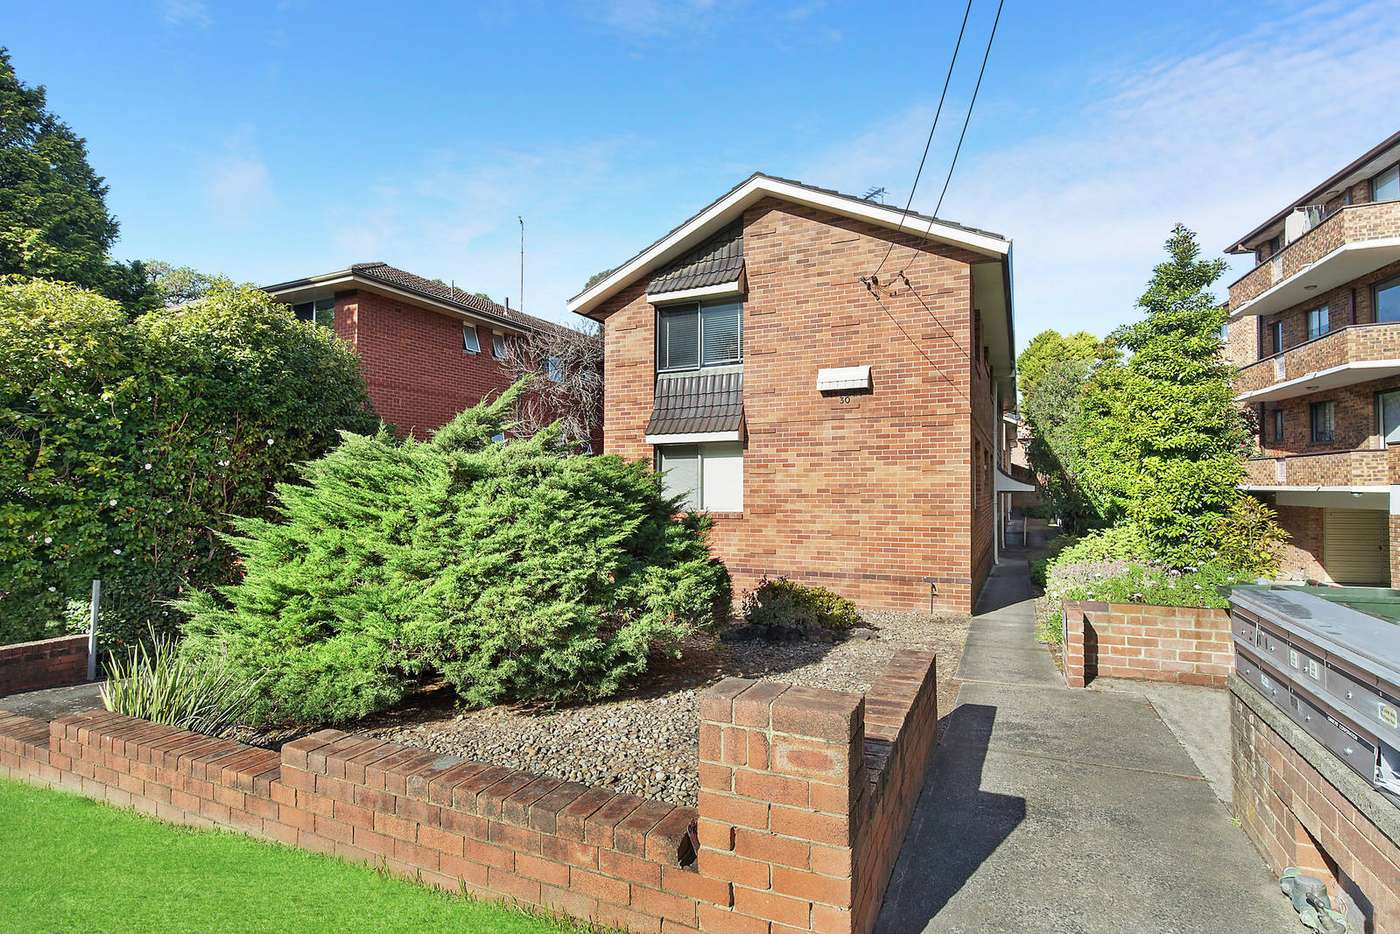 Fifth view of Homely apartment listing, 7/30 Burdett Street, Hornsby NSW 2077